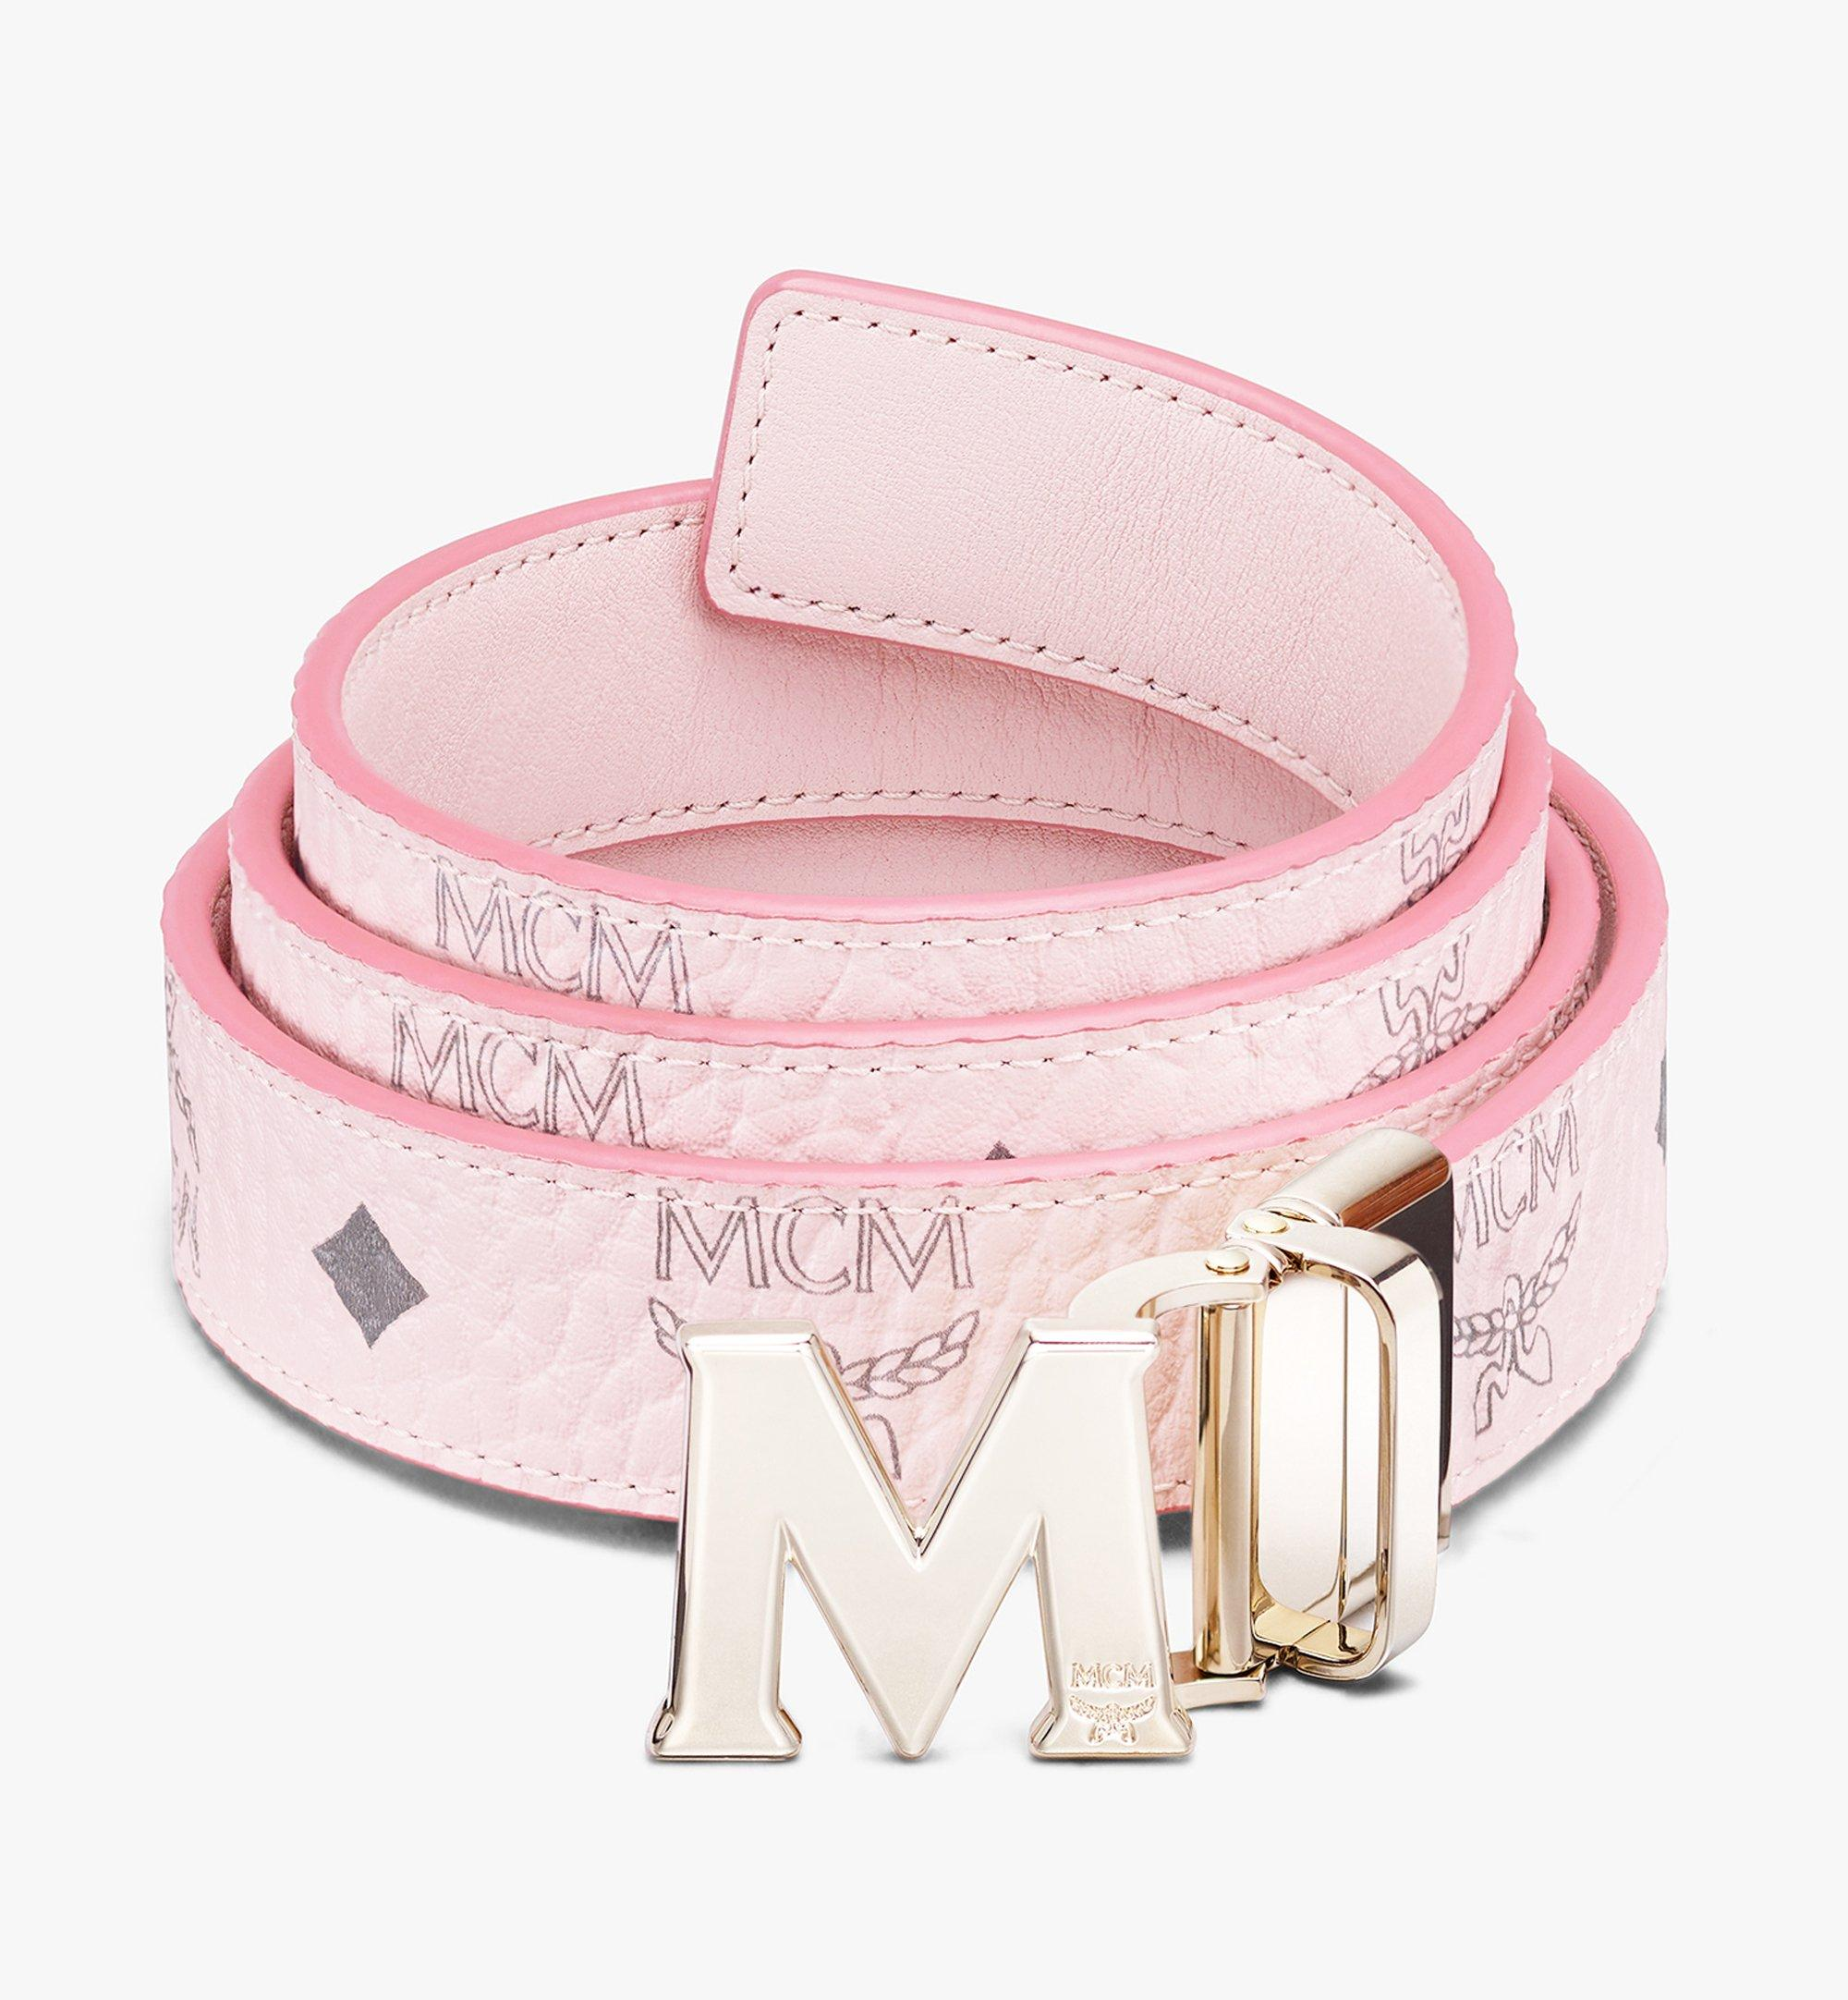 130 Cm 51 In Claus M Reversible Belt 1 In Visetos Pink Mcm Us Save mcm belt to get email alerts and updates on your ebay feed.+ mcm belt michael cromer munchen l44! 130 cm 51 in claus m reversible belt